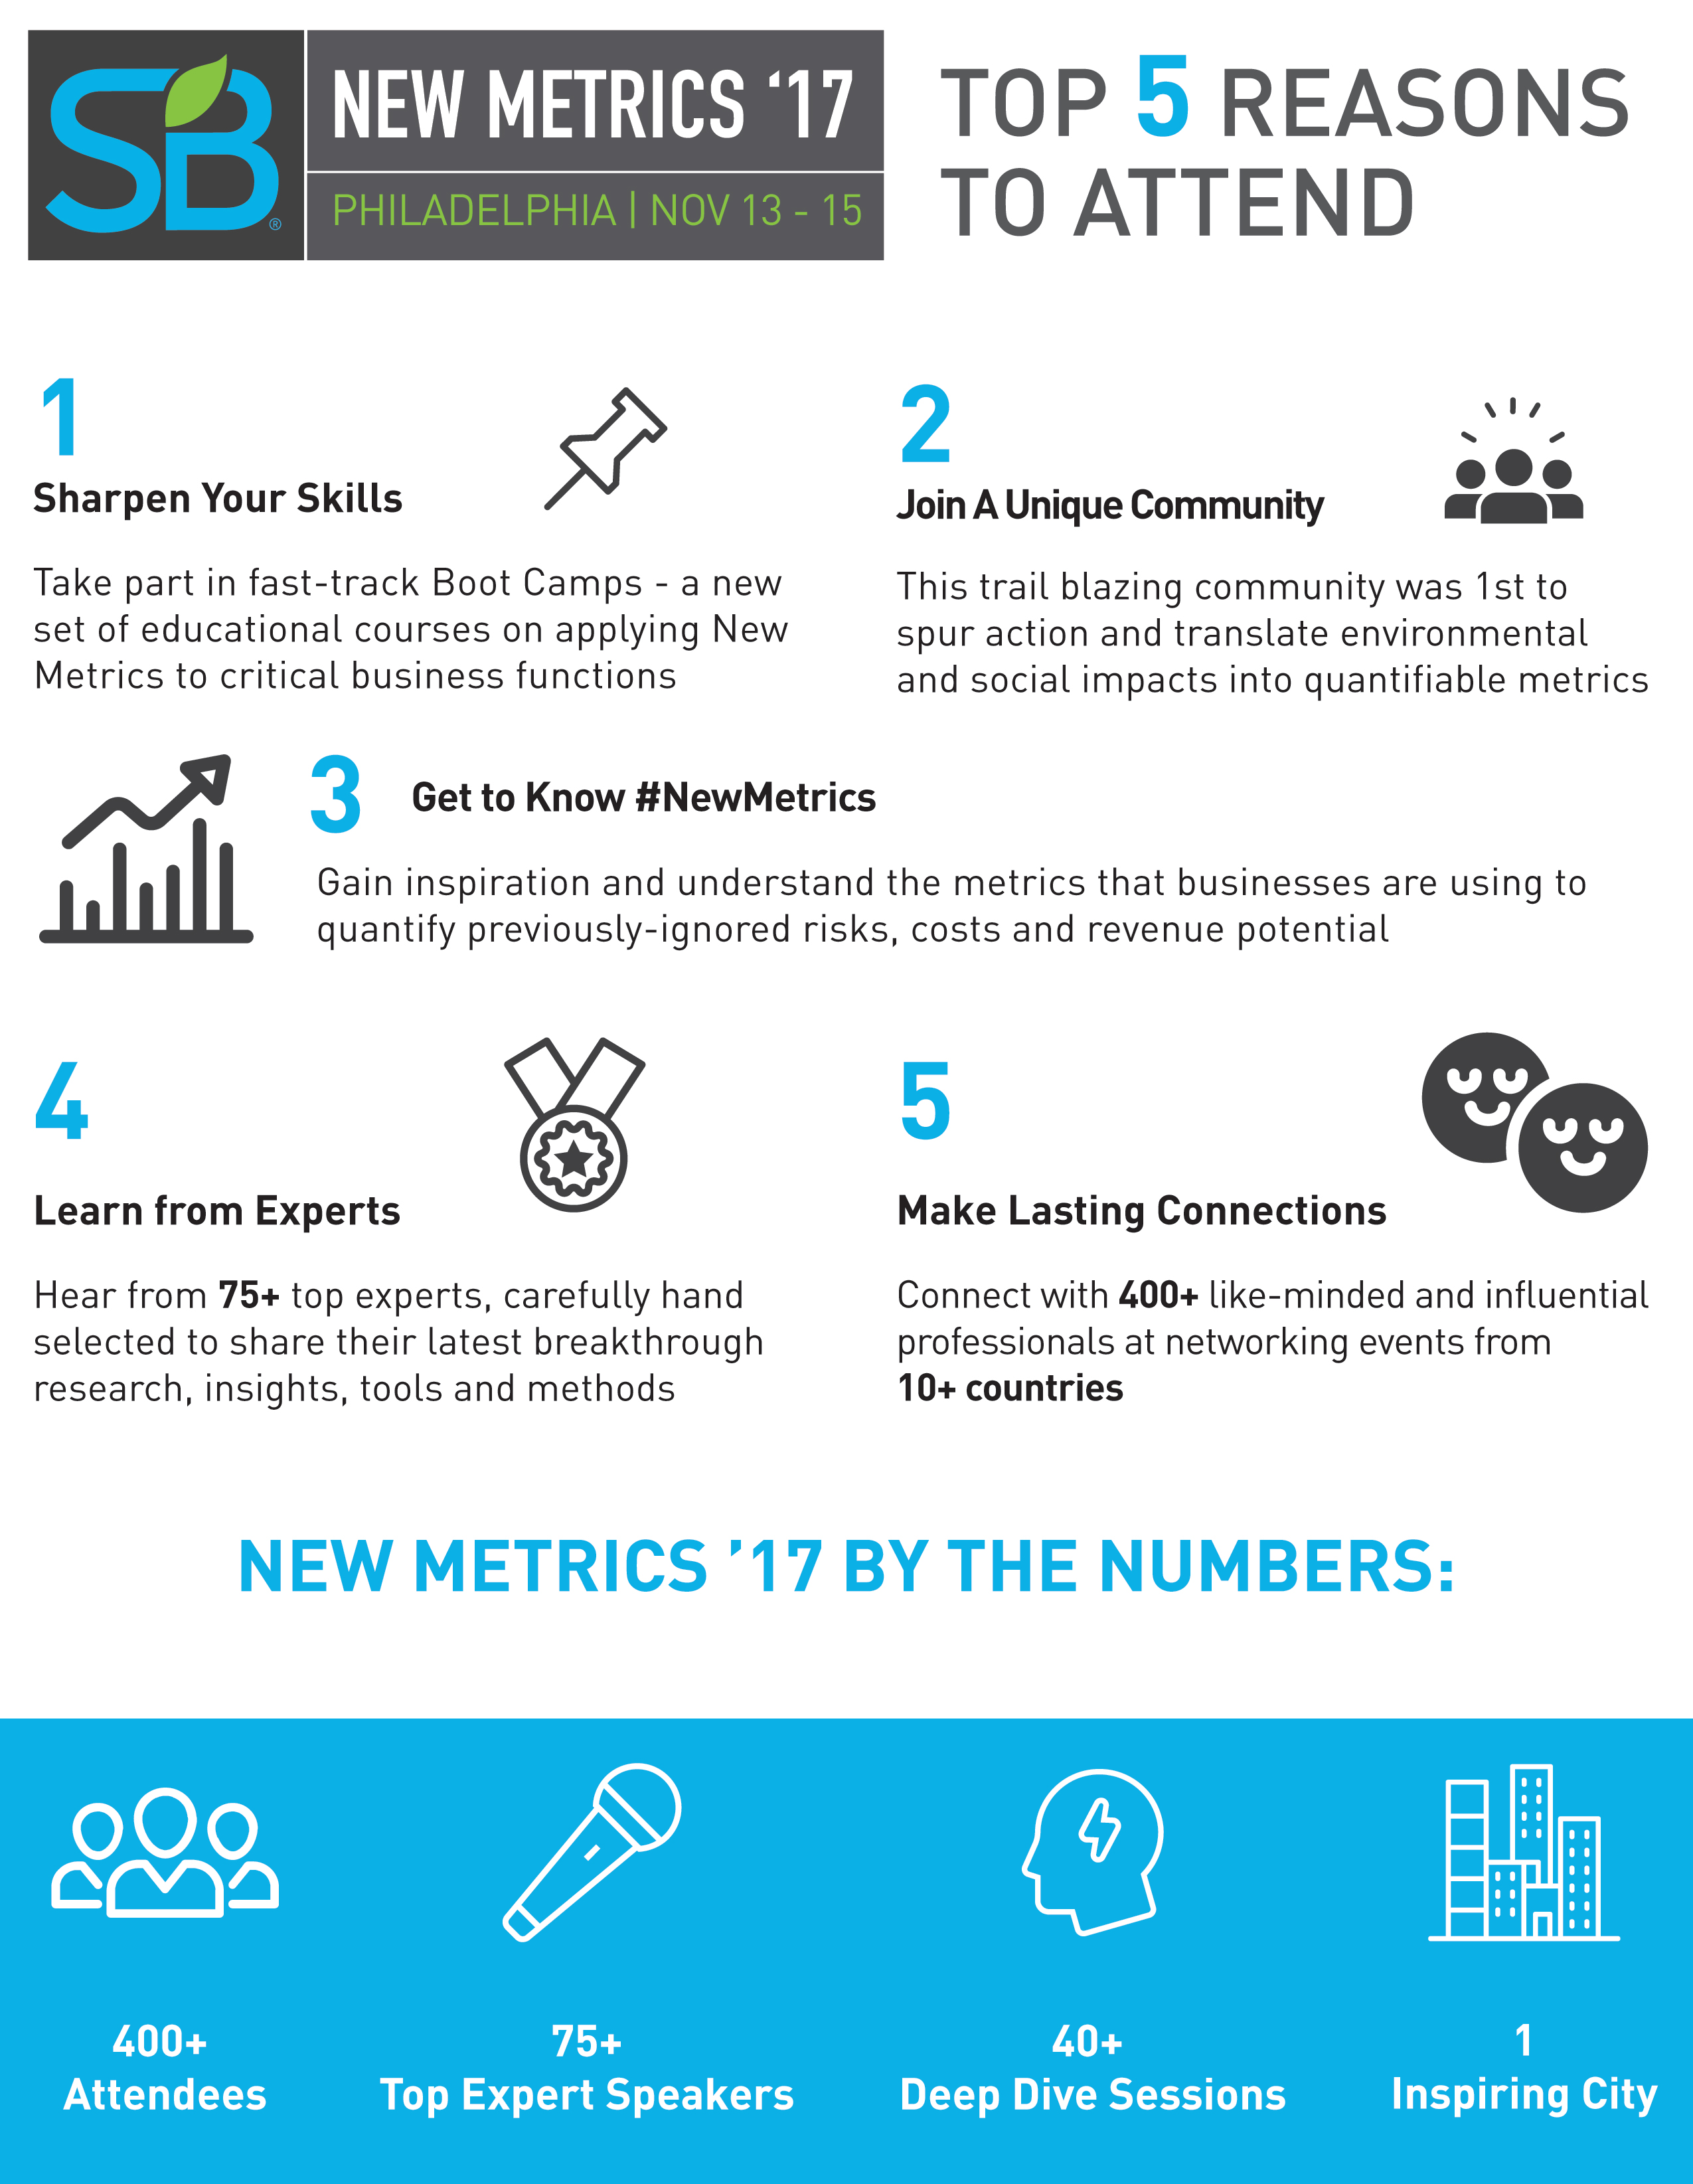 Top 5 Reasons Why Attend New Metrics '17